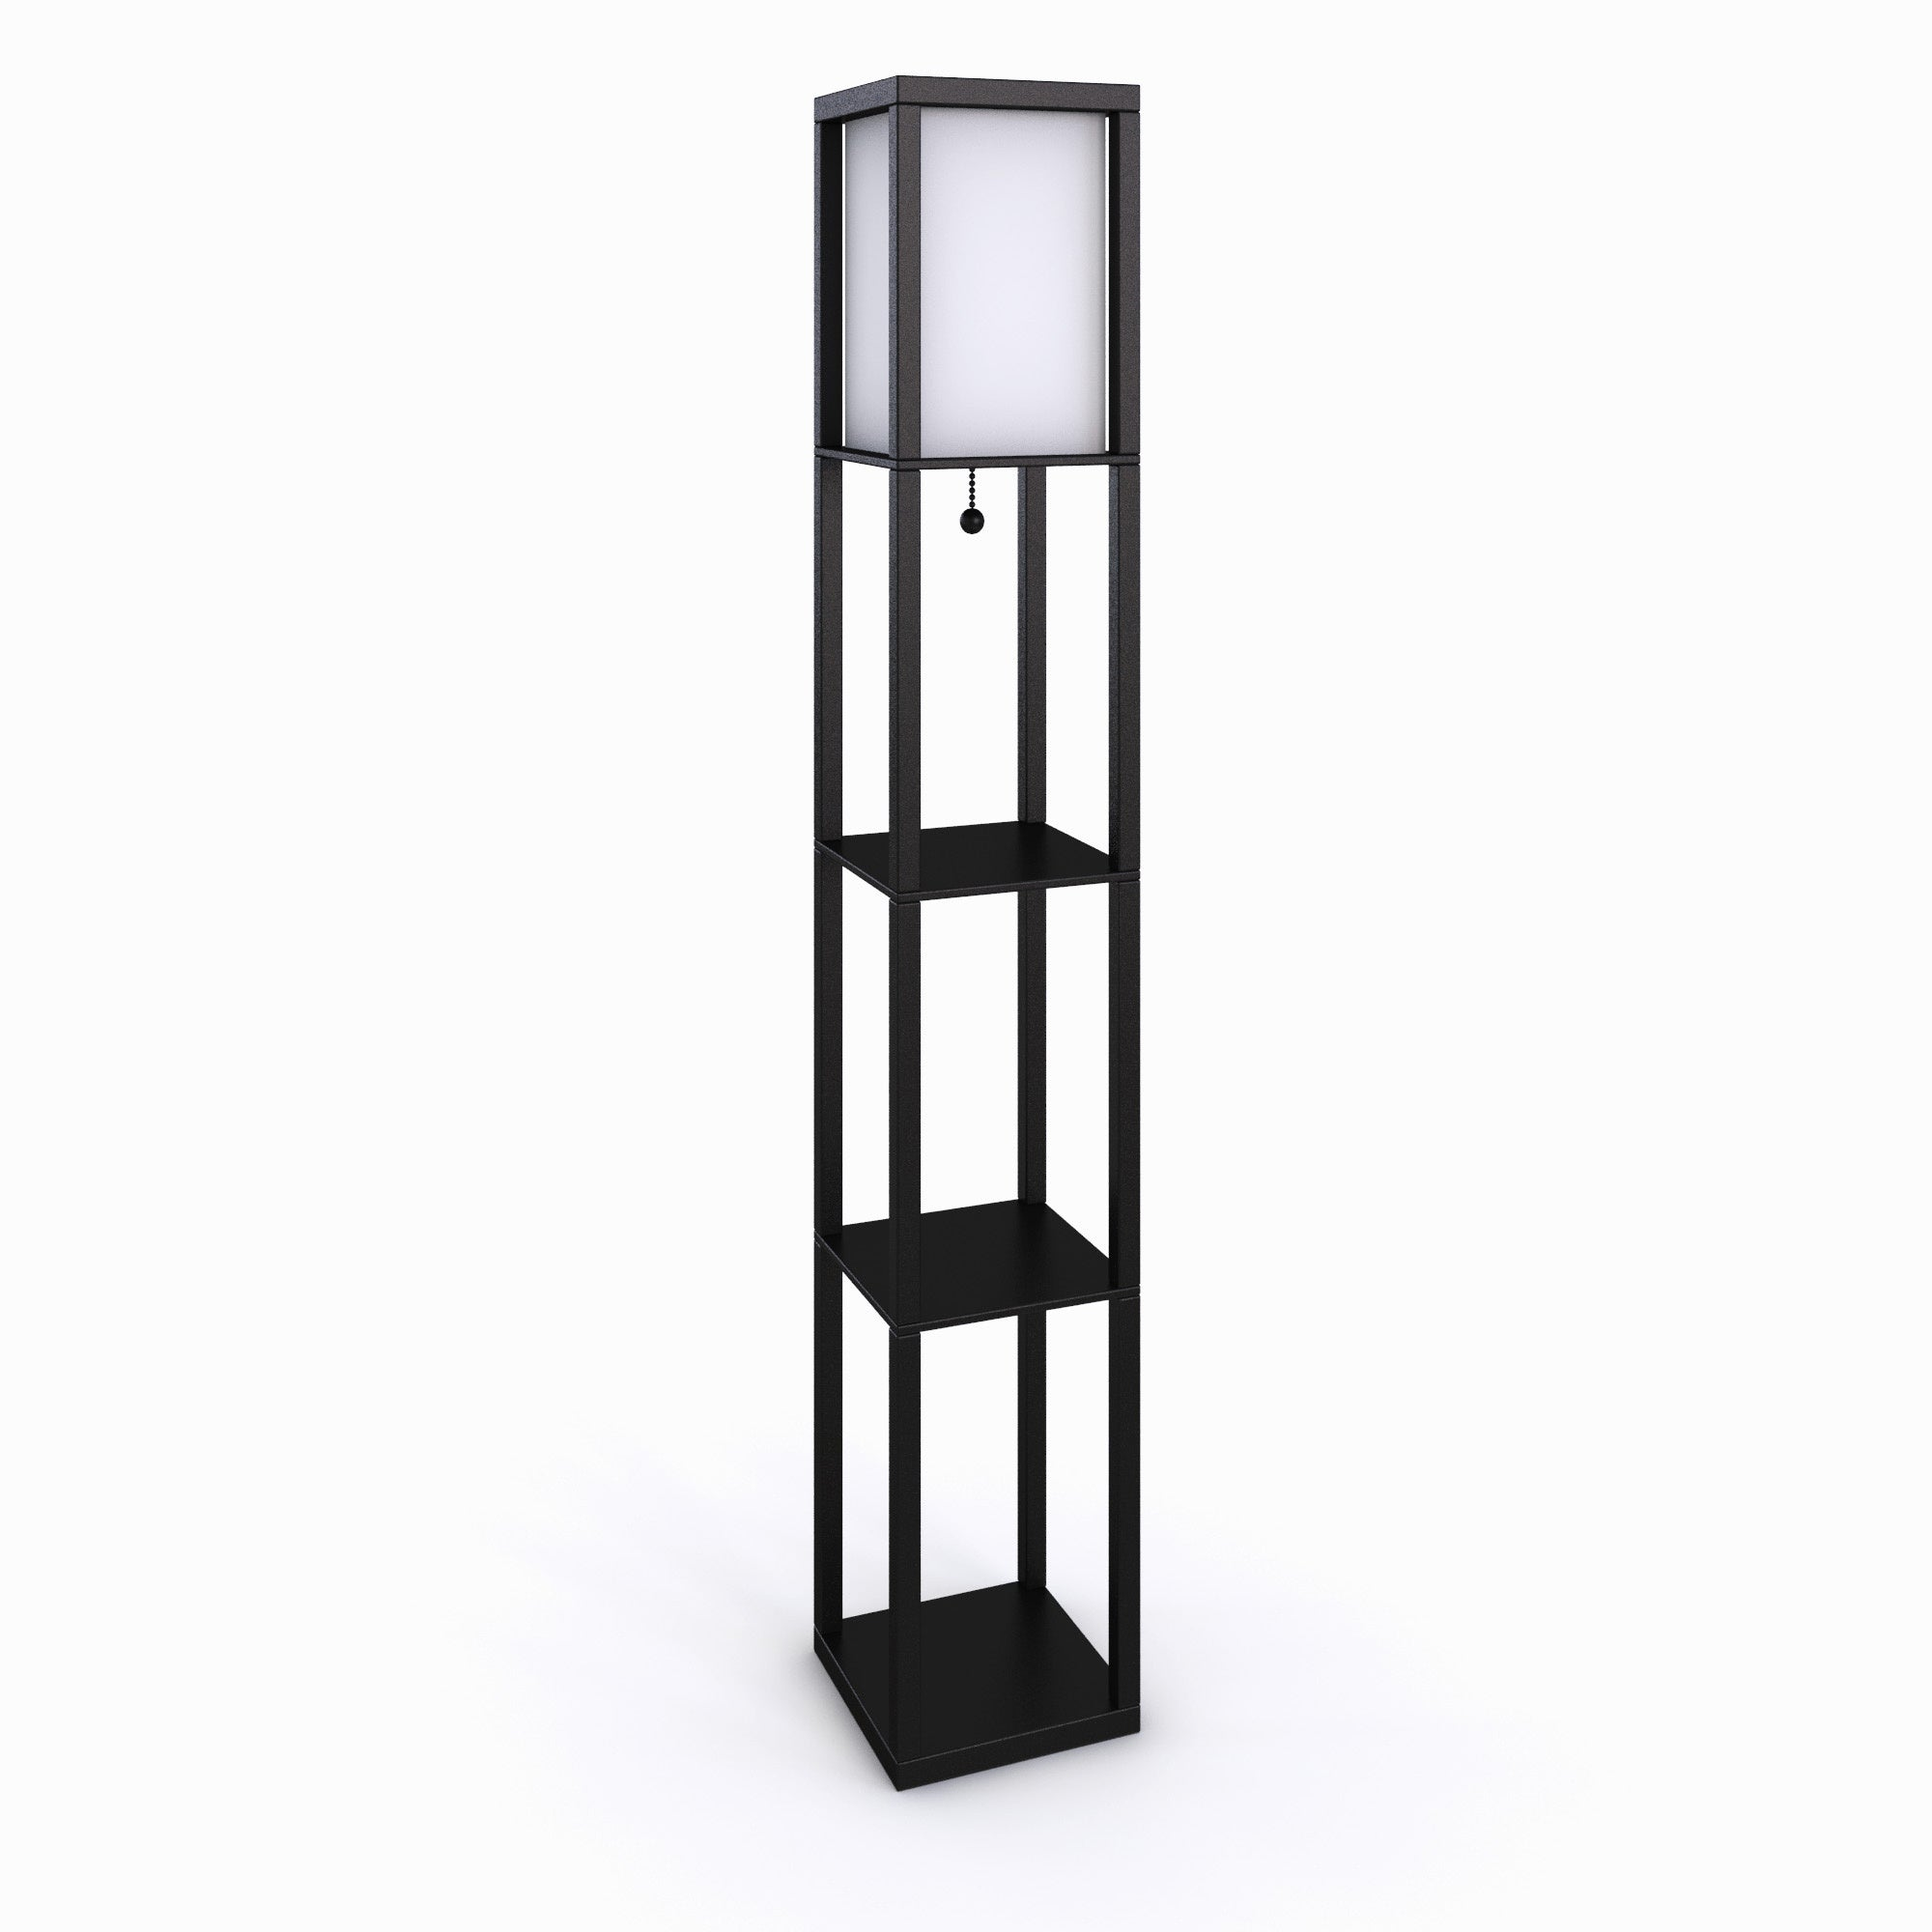 with white efficient revel shelves floor products rv wood off shelf energy shade lamp bulb toro